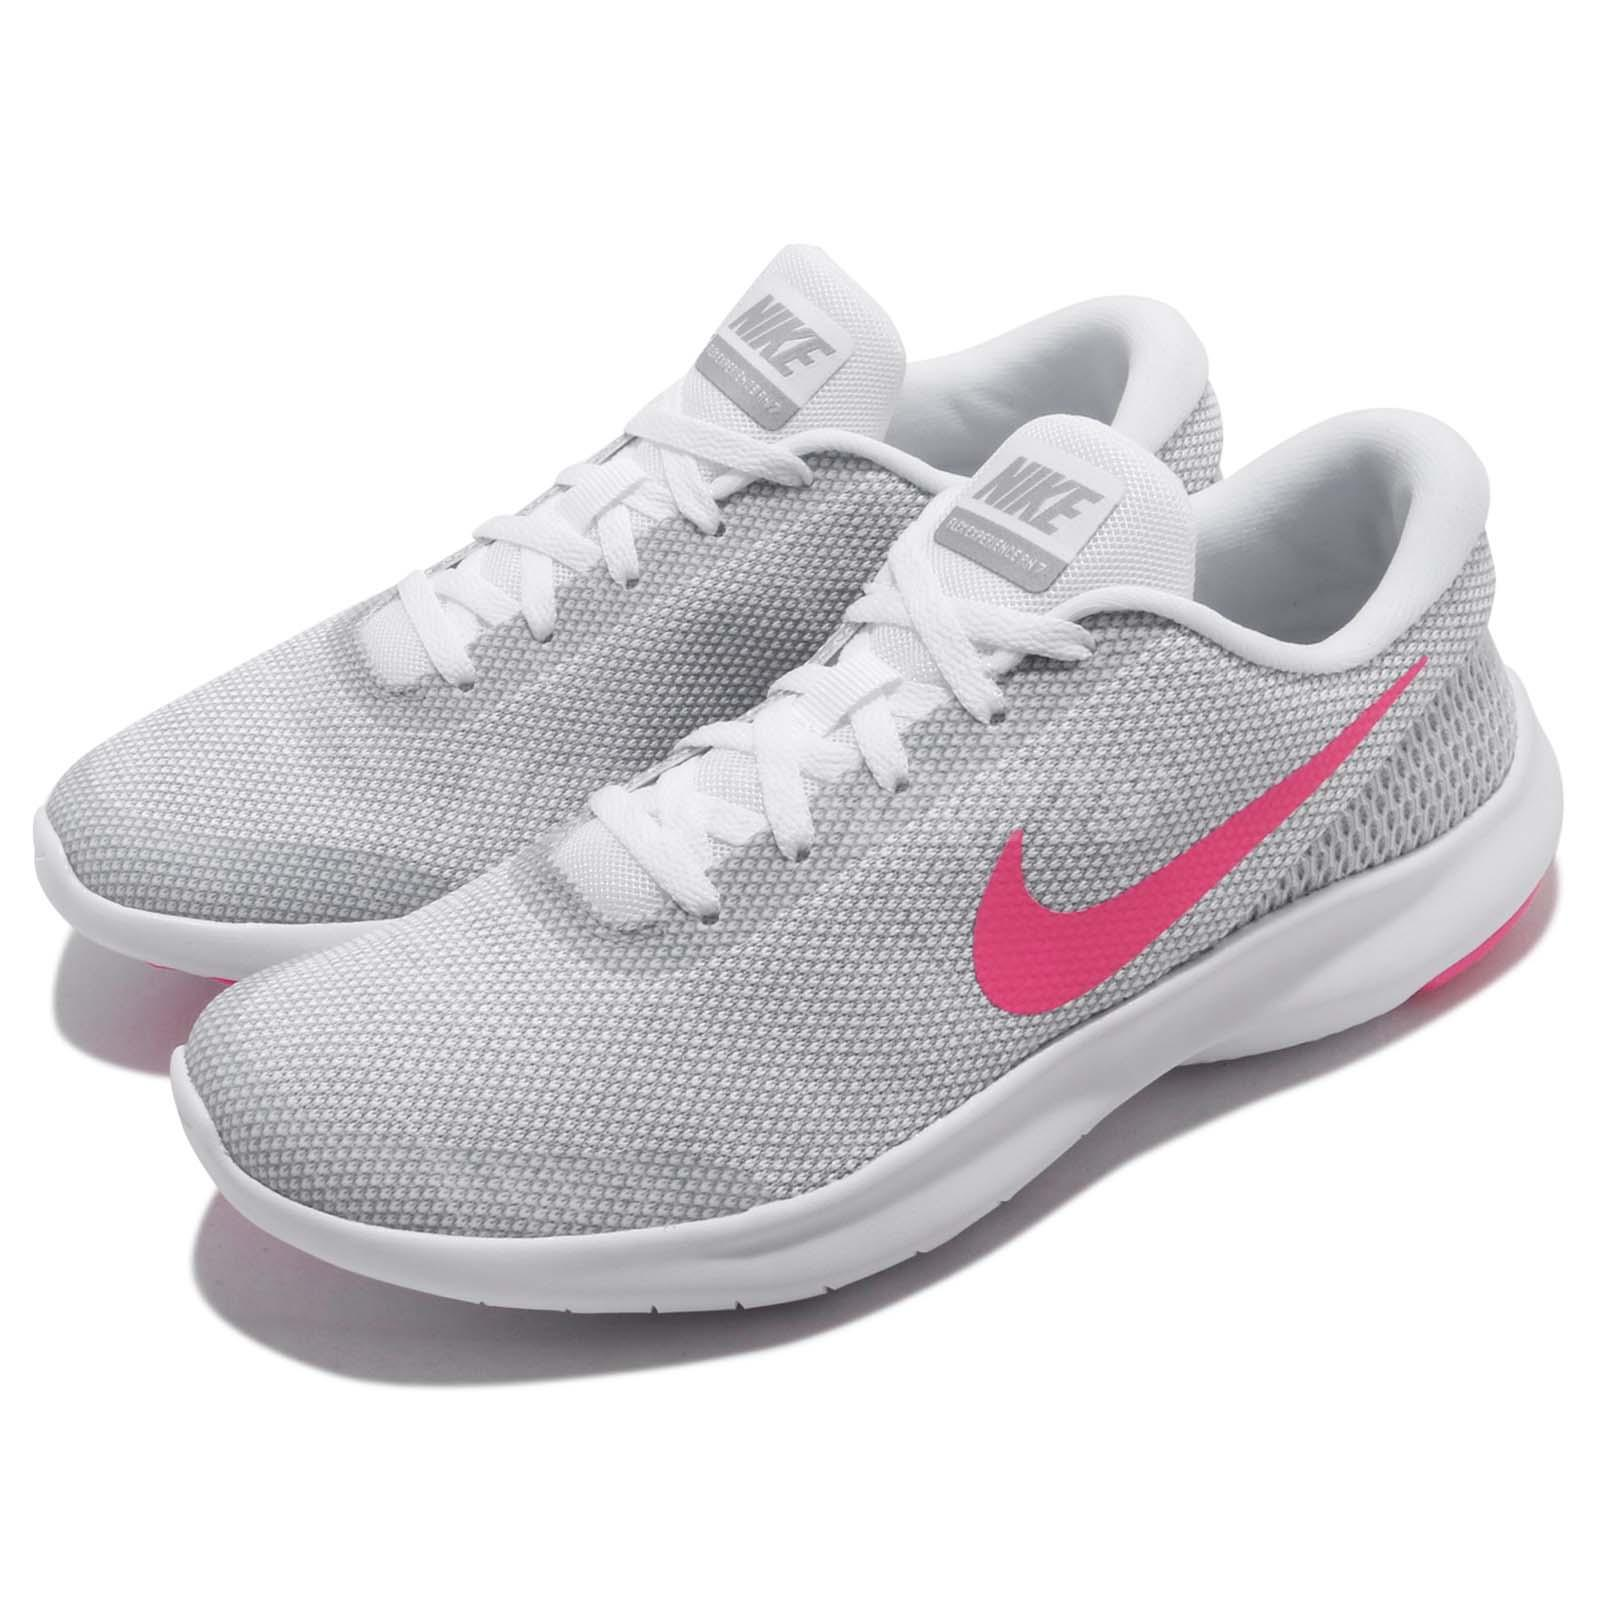 Nike Wmns Flex Experience RN 7 VII White Pink Women Running Shoes 908996-101